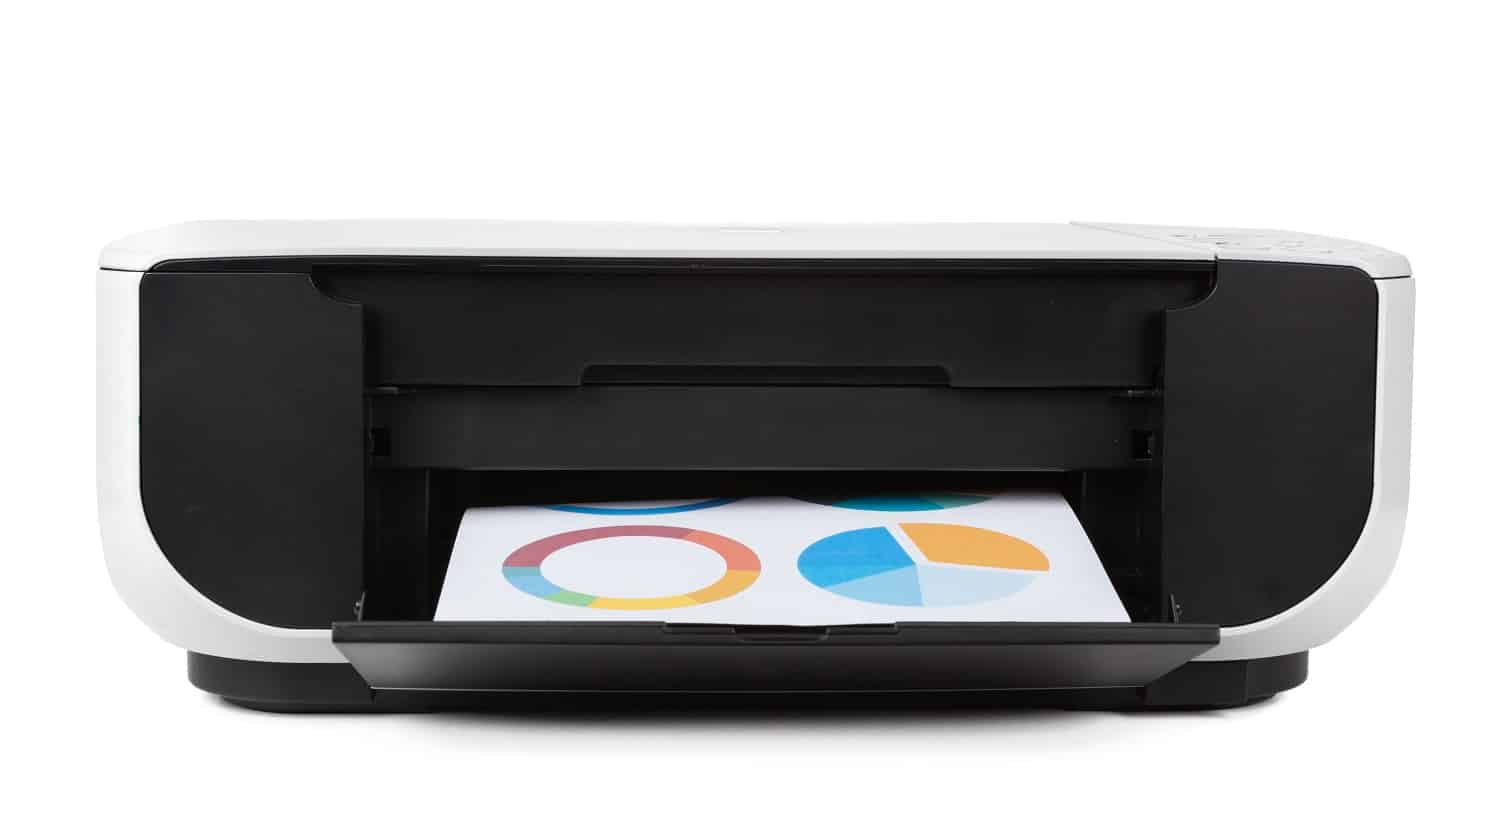 Black multi function printer isolated against a white background